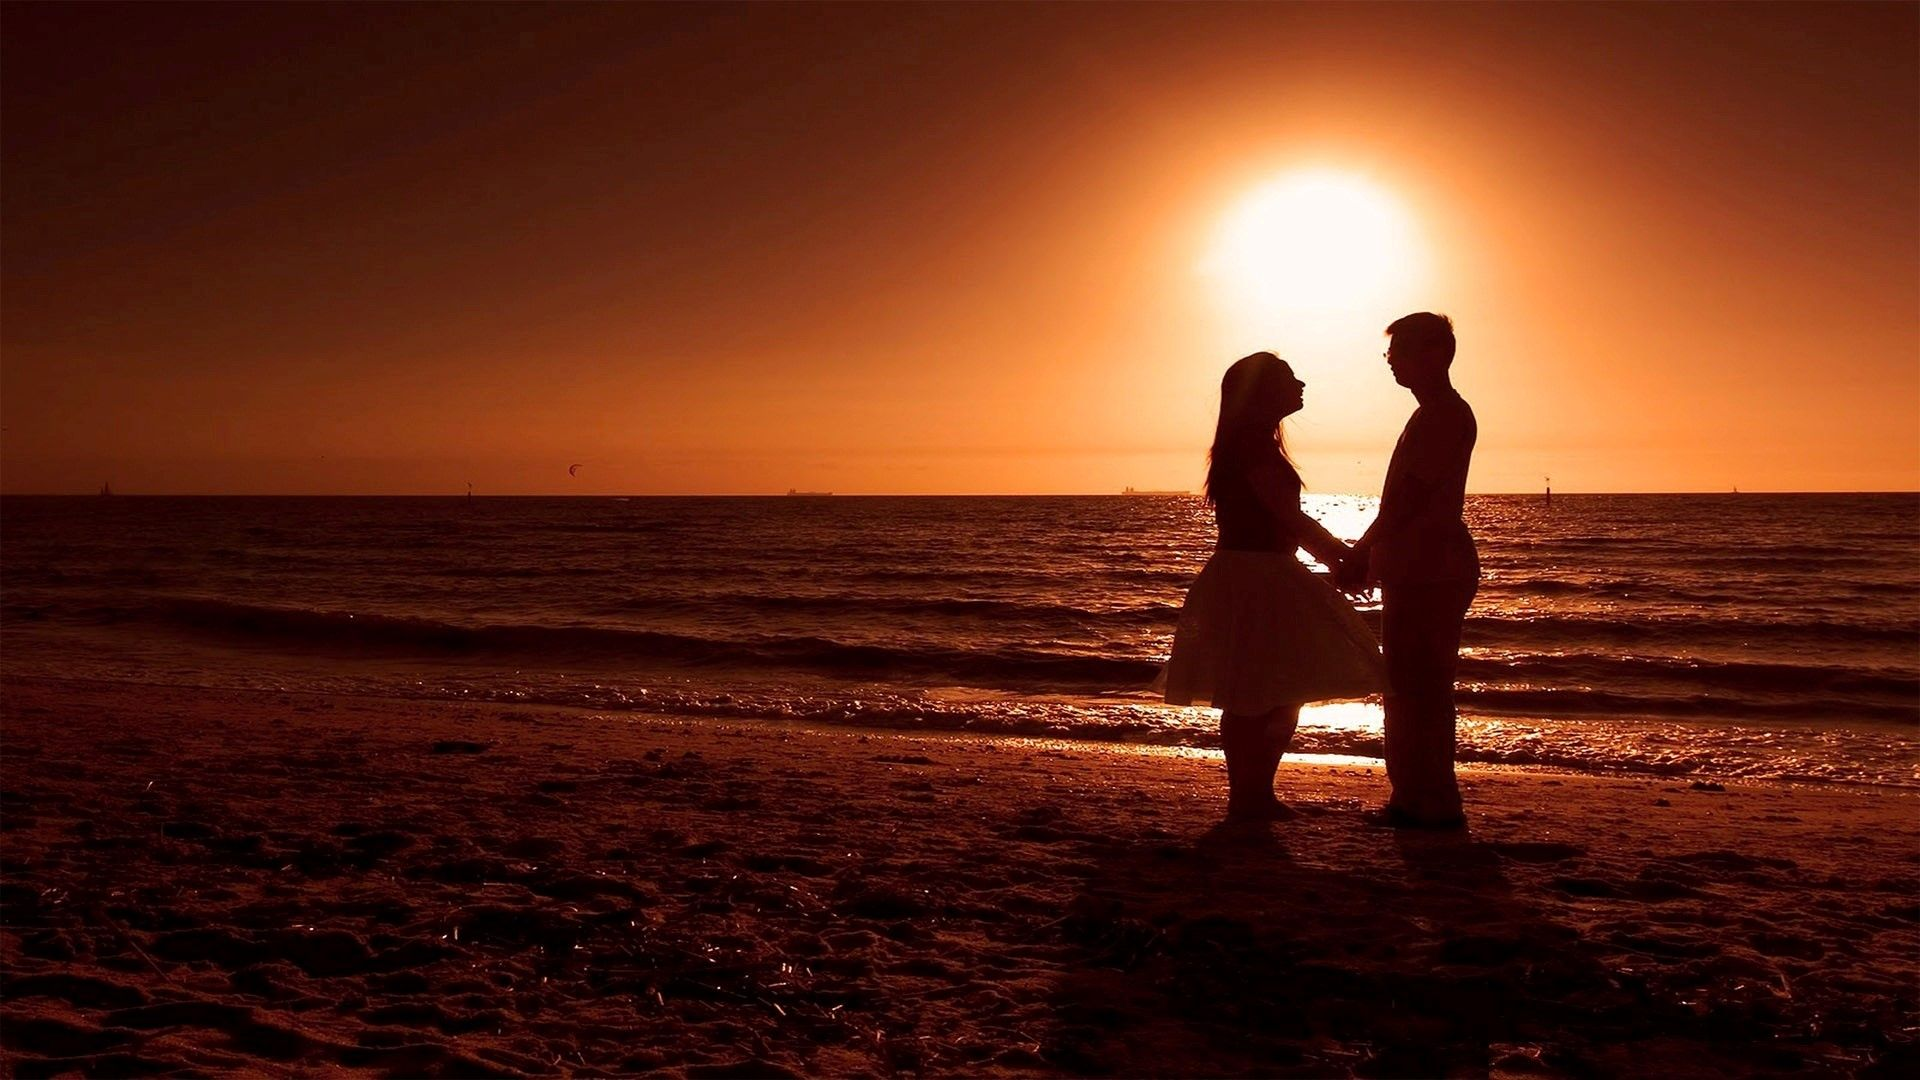 Top Hd Love Wallpapers High Quality Beach Sunset Wallpaper Romantic Beach Romantic Wallpaper